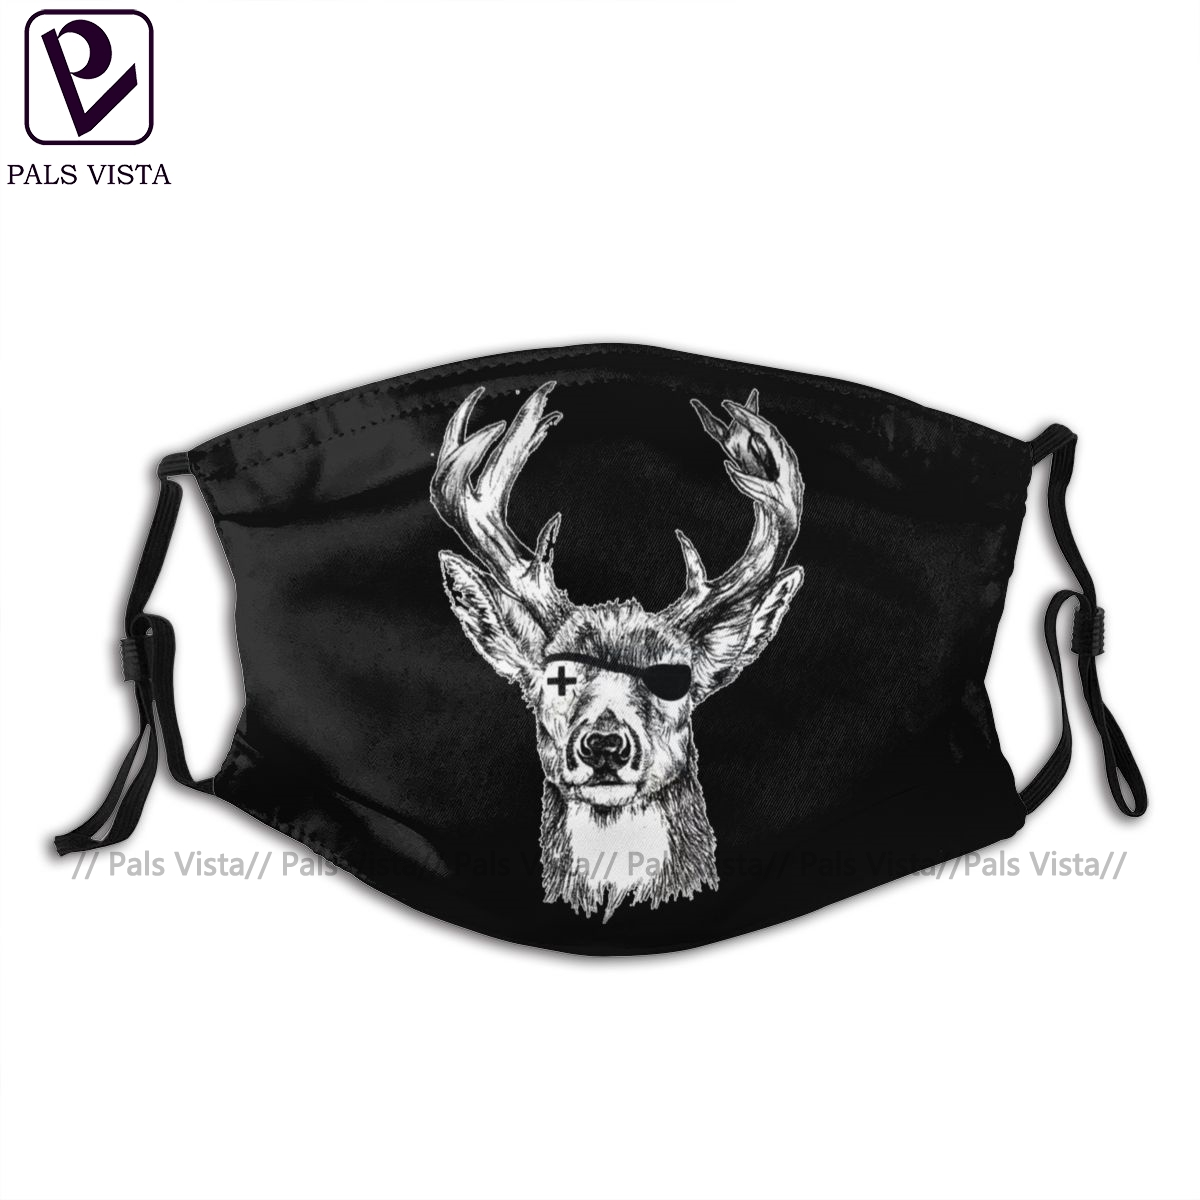 Jagermeister Mouth Face Mask Jagermeister Facial Mask Cool Fashion with 2 Filters for Adult|Мужские маски-балаклавы|   | АлиЭкспресс